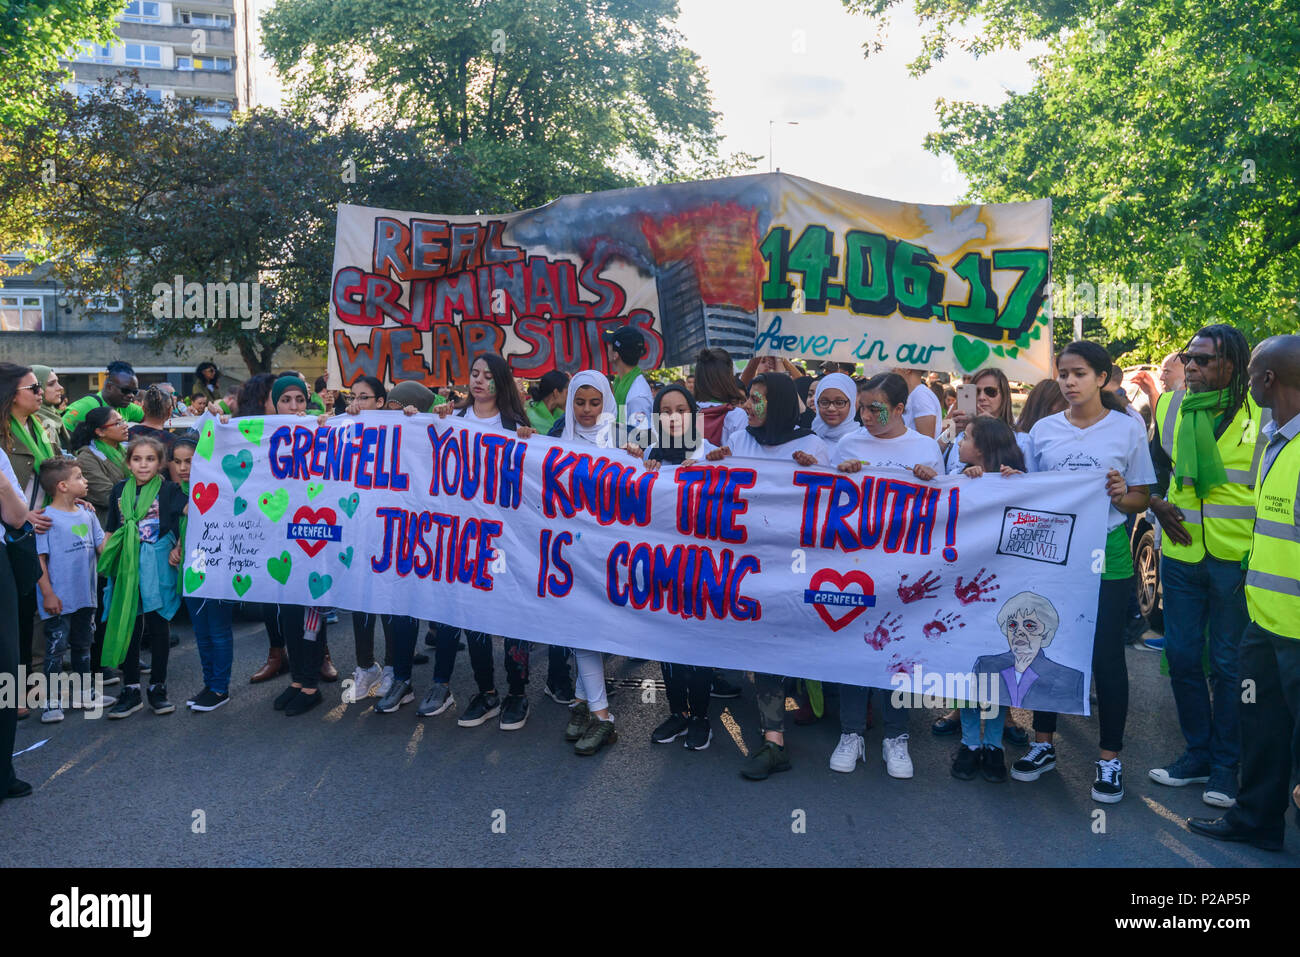 London, UK. 14th June 2018. Grenfell Youth and others line up to walk with their banner with thousands of people in silence from close to Grenfell Tower remembering the victims of the disaster on the first anniversary of the disastrous fire which killed 72 and left survivors traumatised. Many of those made homeless by the fire are still in temporary accomodation a year later despite promises mde by Theresa May and Kensington & Chelsea council, who many fell have failed the local community both before and after the fire. They say had they been listened to and respected Grenfell would not have h - Stock Image